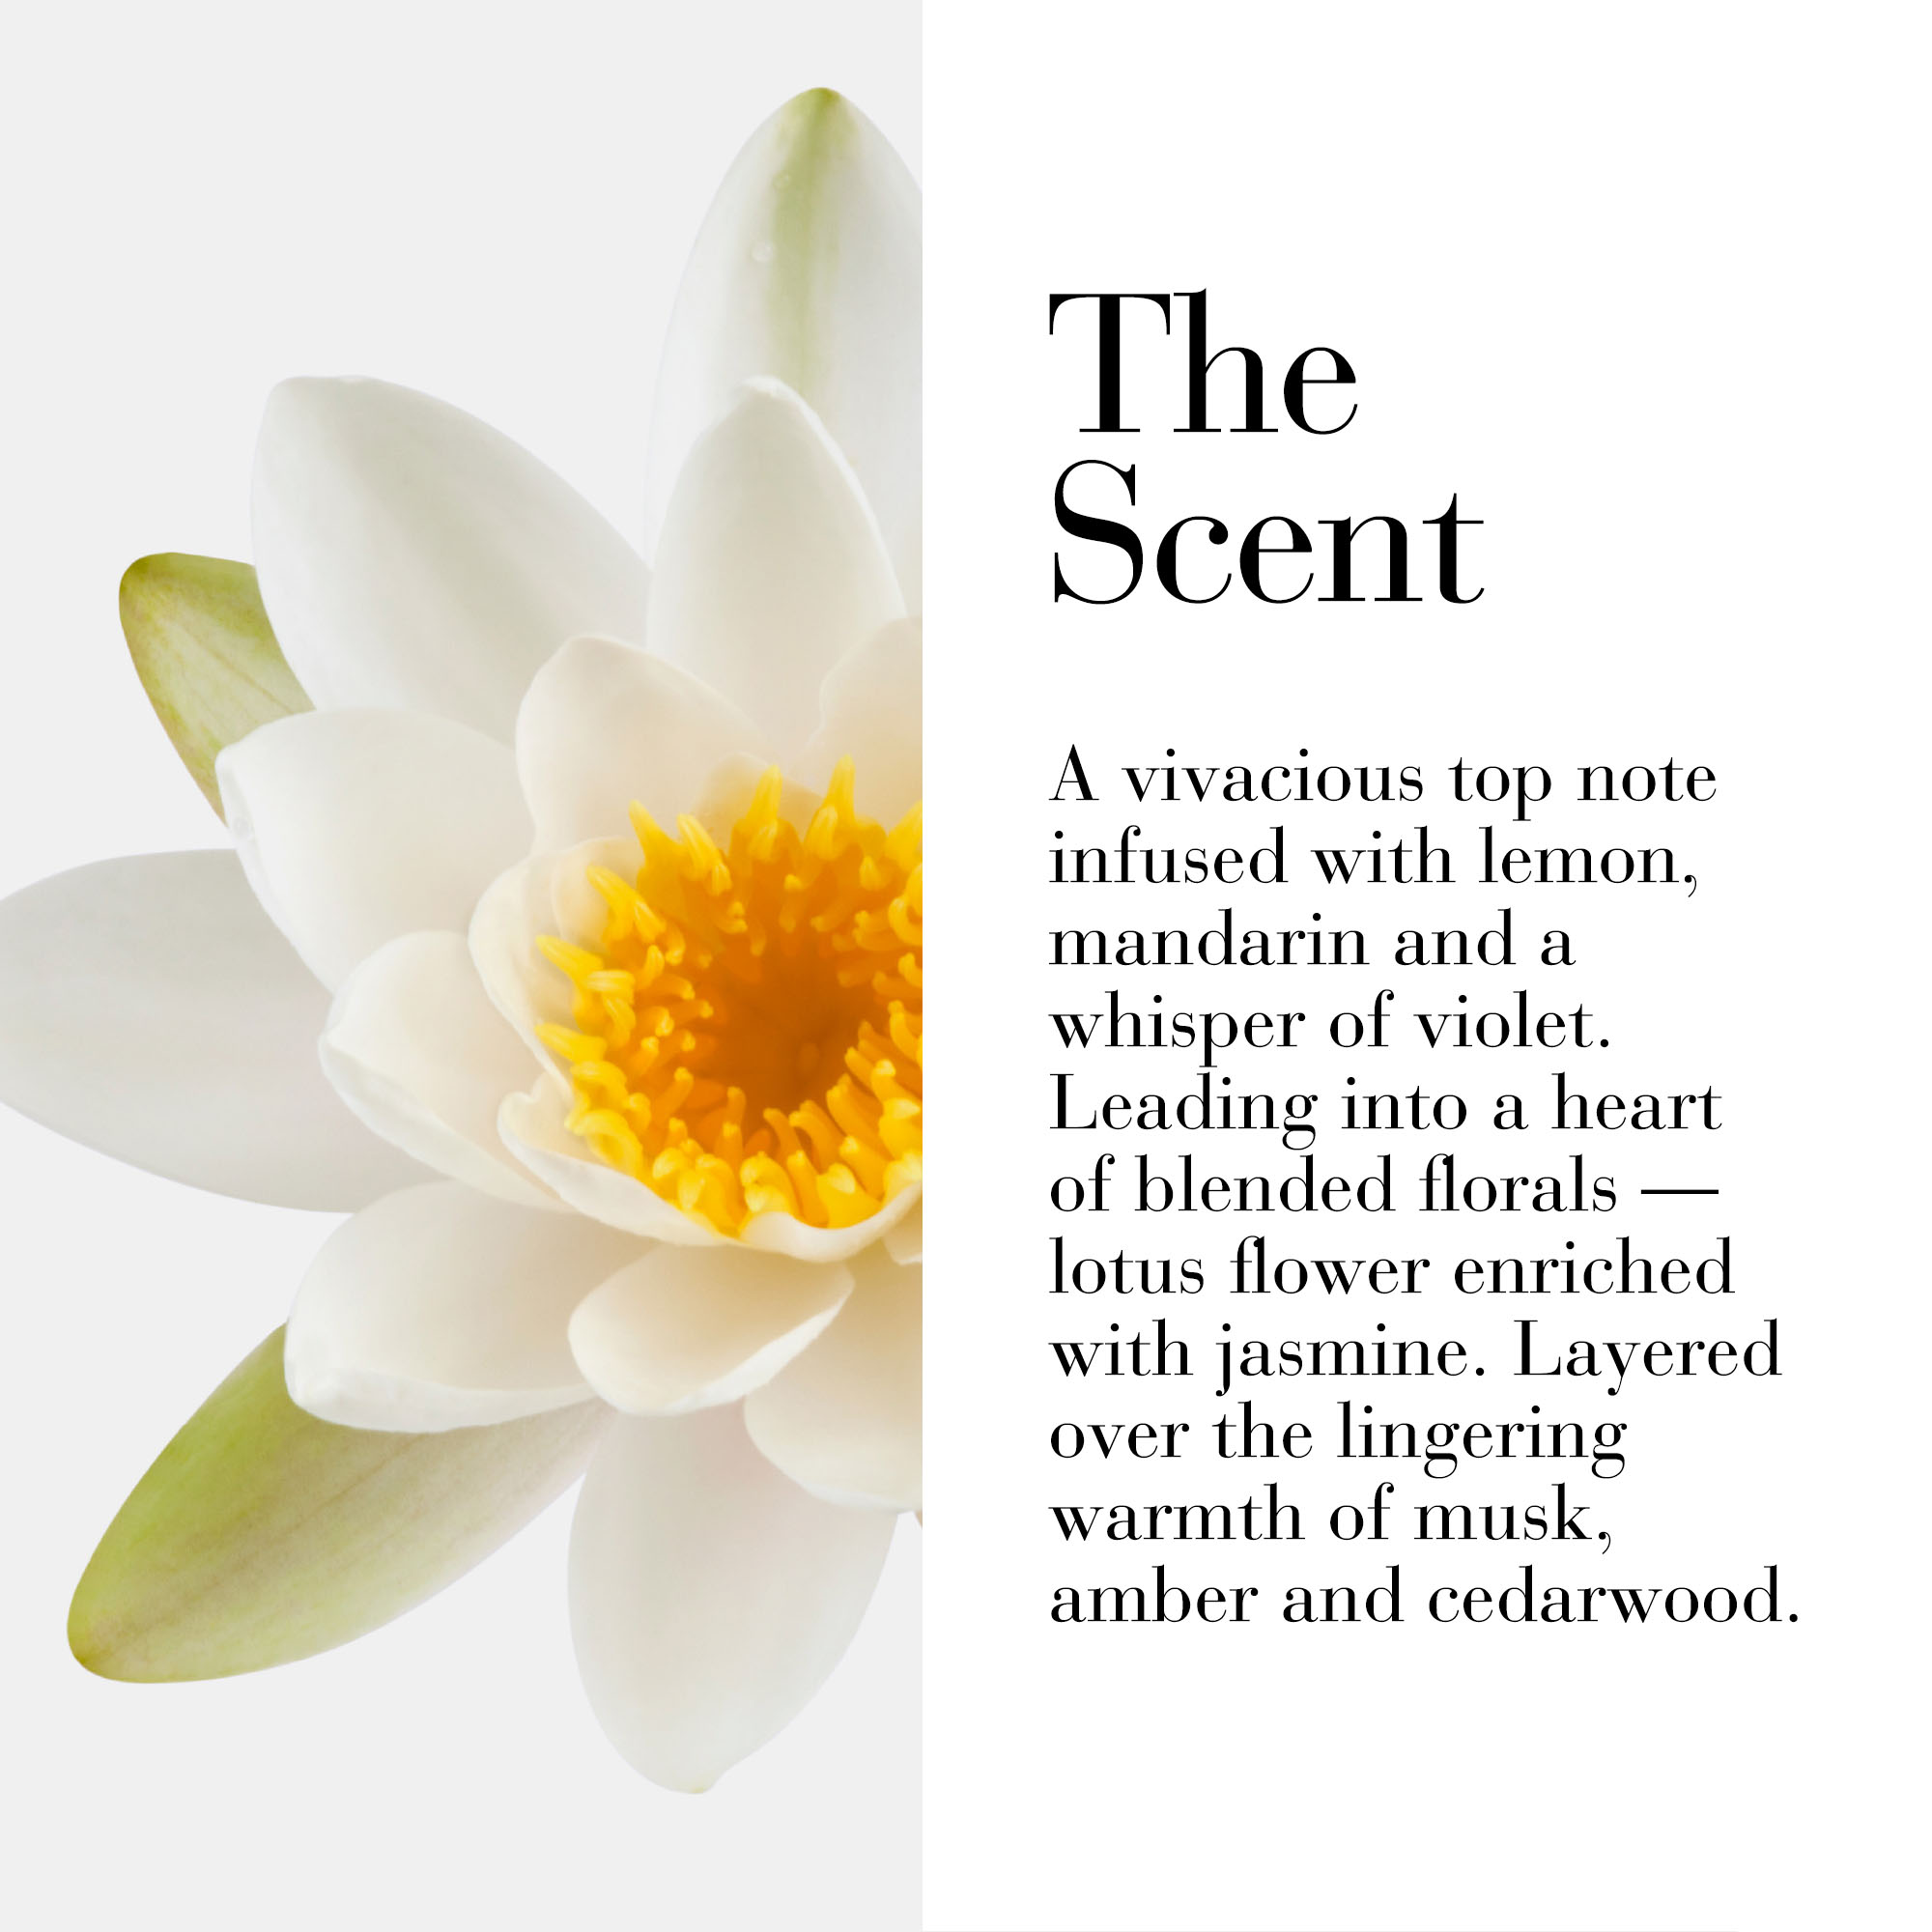 The scent is a vivacious top note infused with lemon, mandarin and whisper of violet. Leading into a heart of blended florals-lotus flower enriched with jasmine. Layered over the lingering warmth of musk, amber and cedarwood.